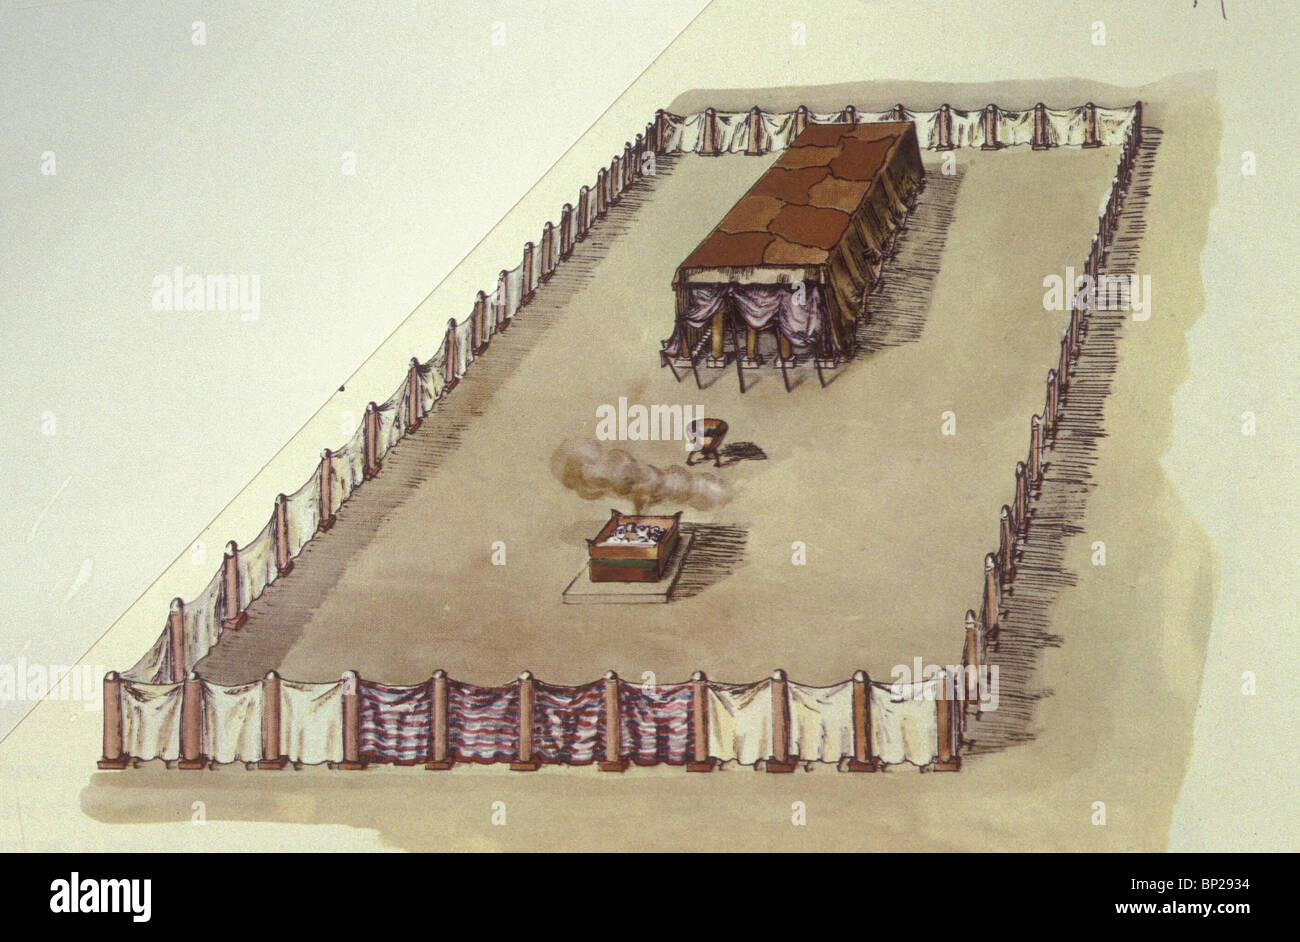 DRAWING OF THE RECONSTRUCTION OF THE TABERNACLE THE TENT OF WORSHIP ERECTED BY THE ISRAELITES AFTER LEAVING EGYPT - Stock Image